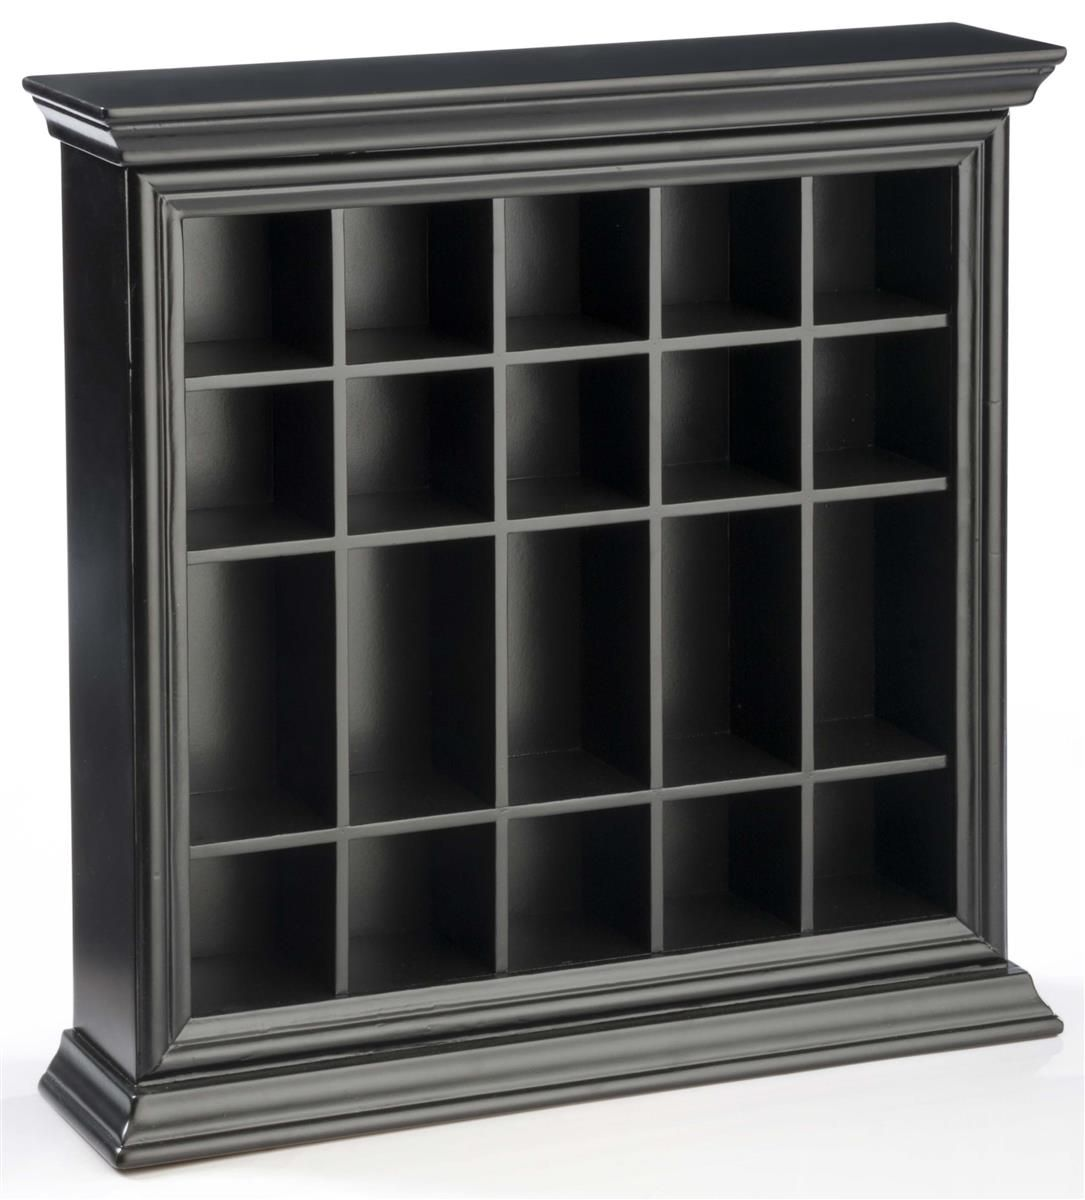 Shot Glass Display Case Tabletop Wall Crown Molding Open Face - Black Basement In